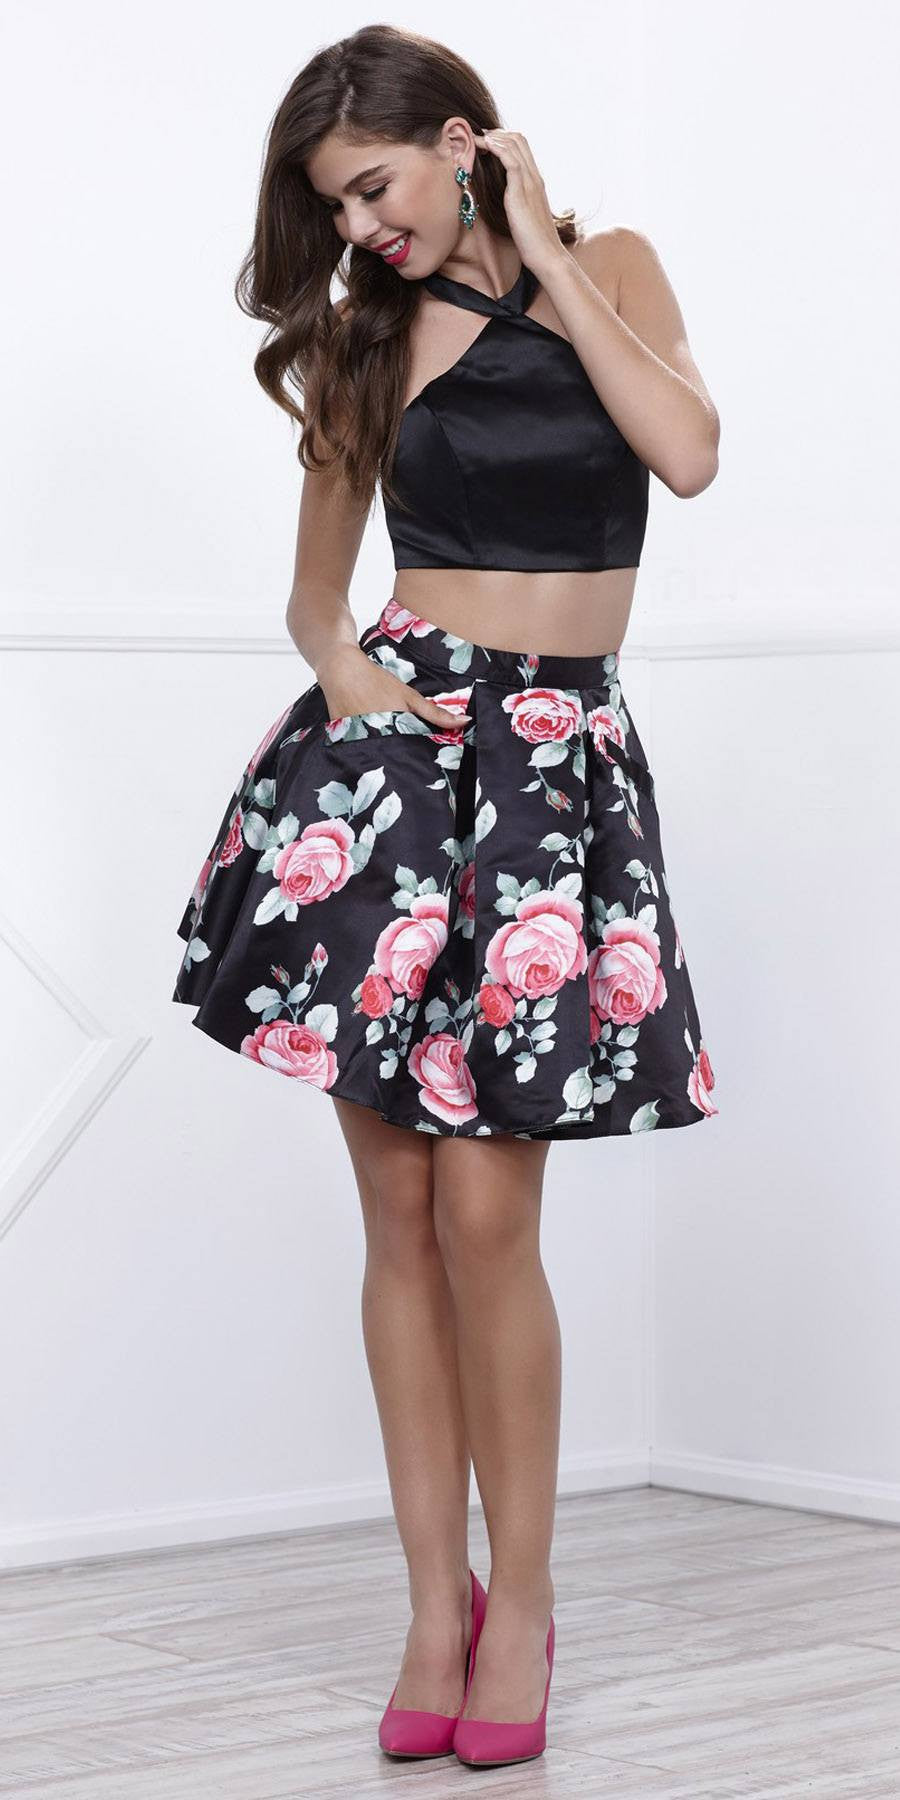 eb54e0fb24d Black Crop Top Two-Piece Cocktail Dress Floral Printed Skirt with ...